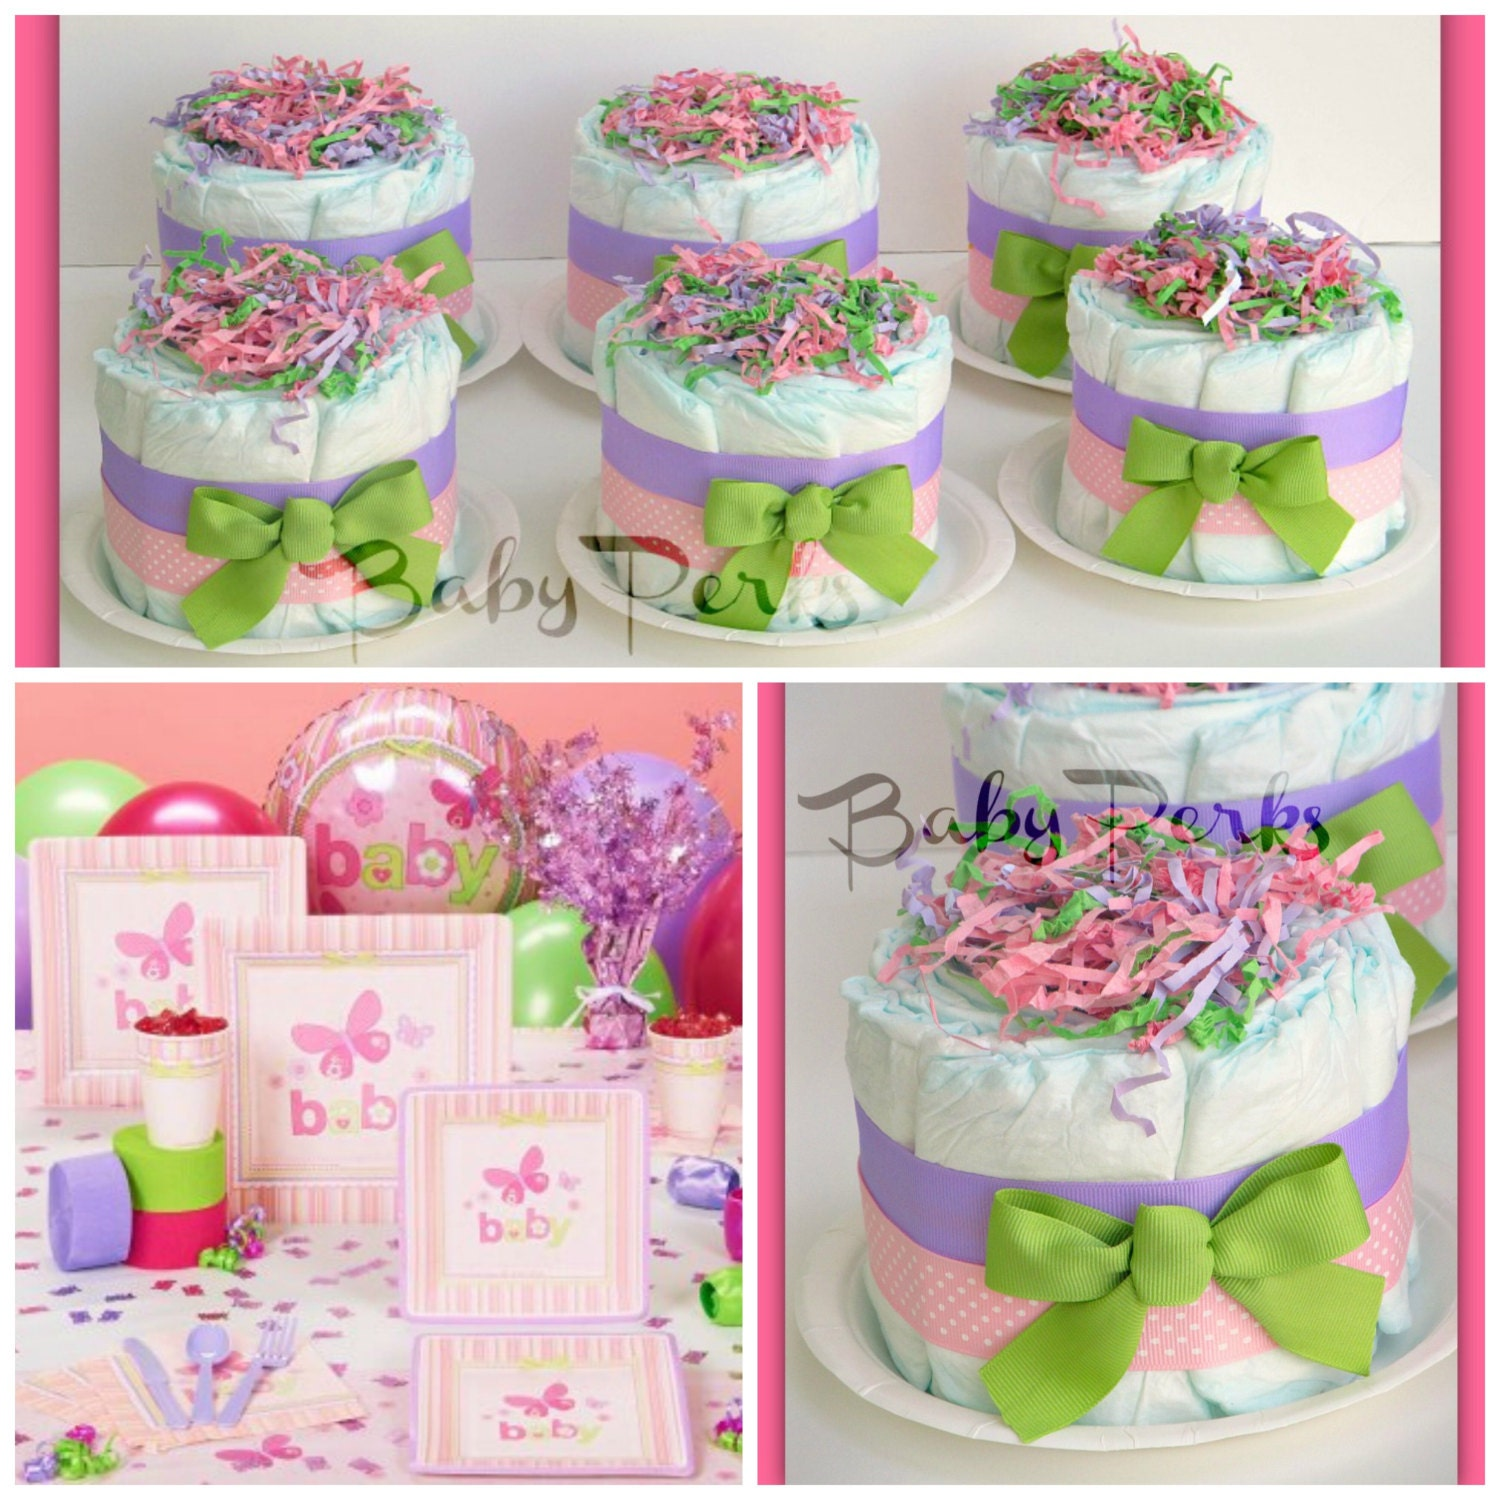 mini diaper cakes any colors baby shower decorations